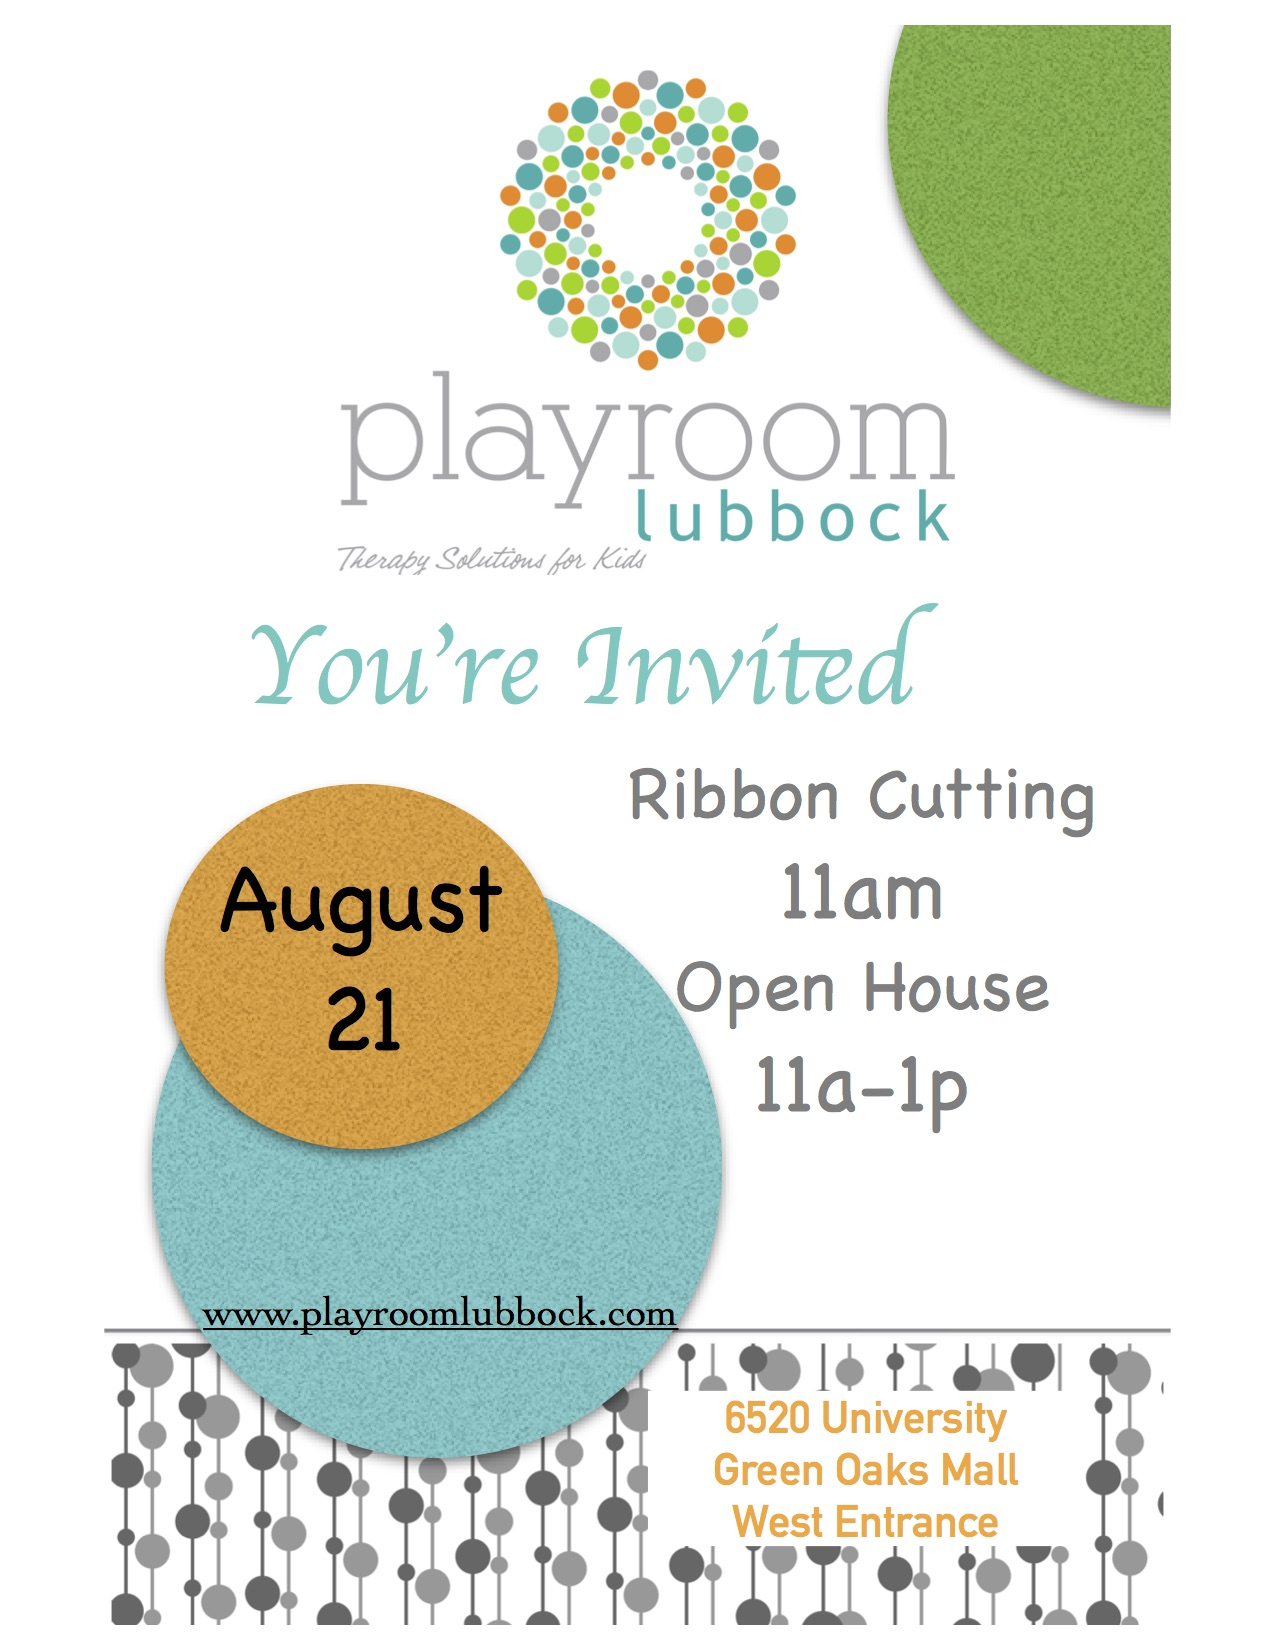 playroomlubbockgrandopening.jpg